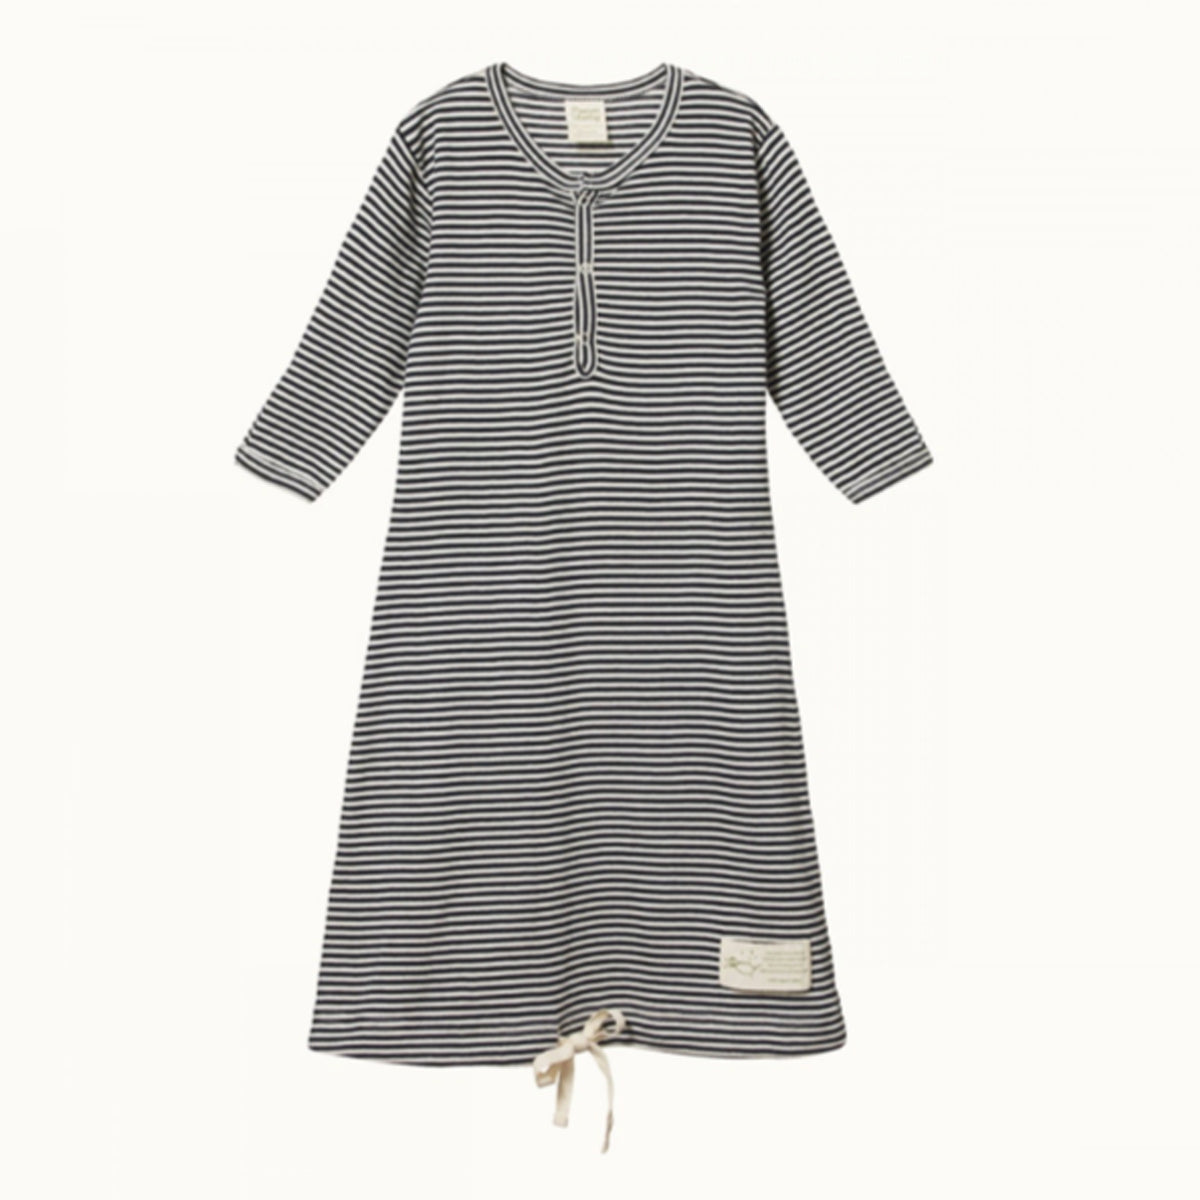 NATURE BABY  |  SLEEPING GOWN  |  NAVY STRIPE